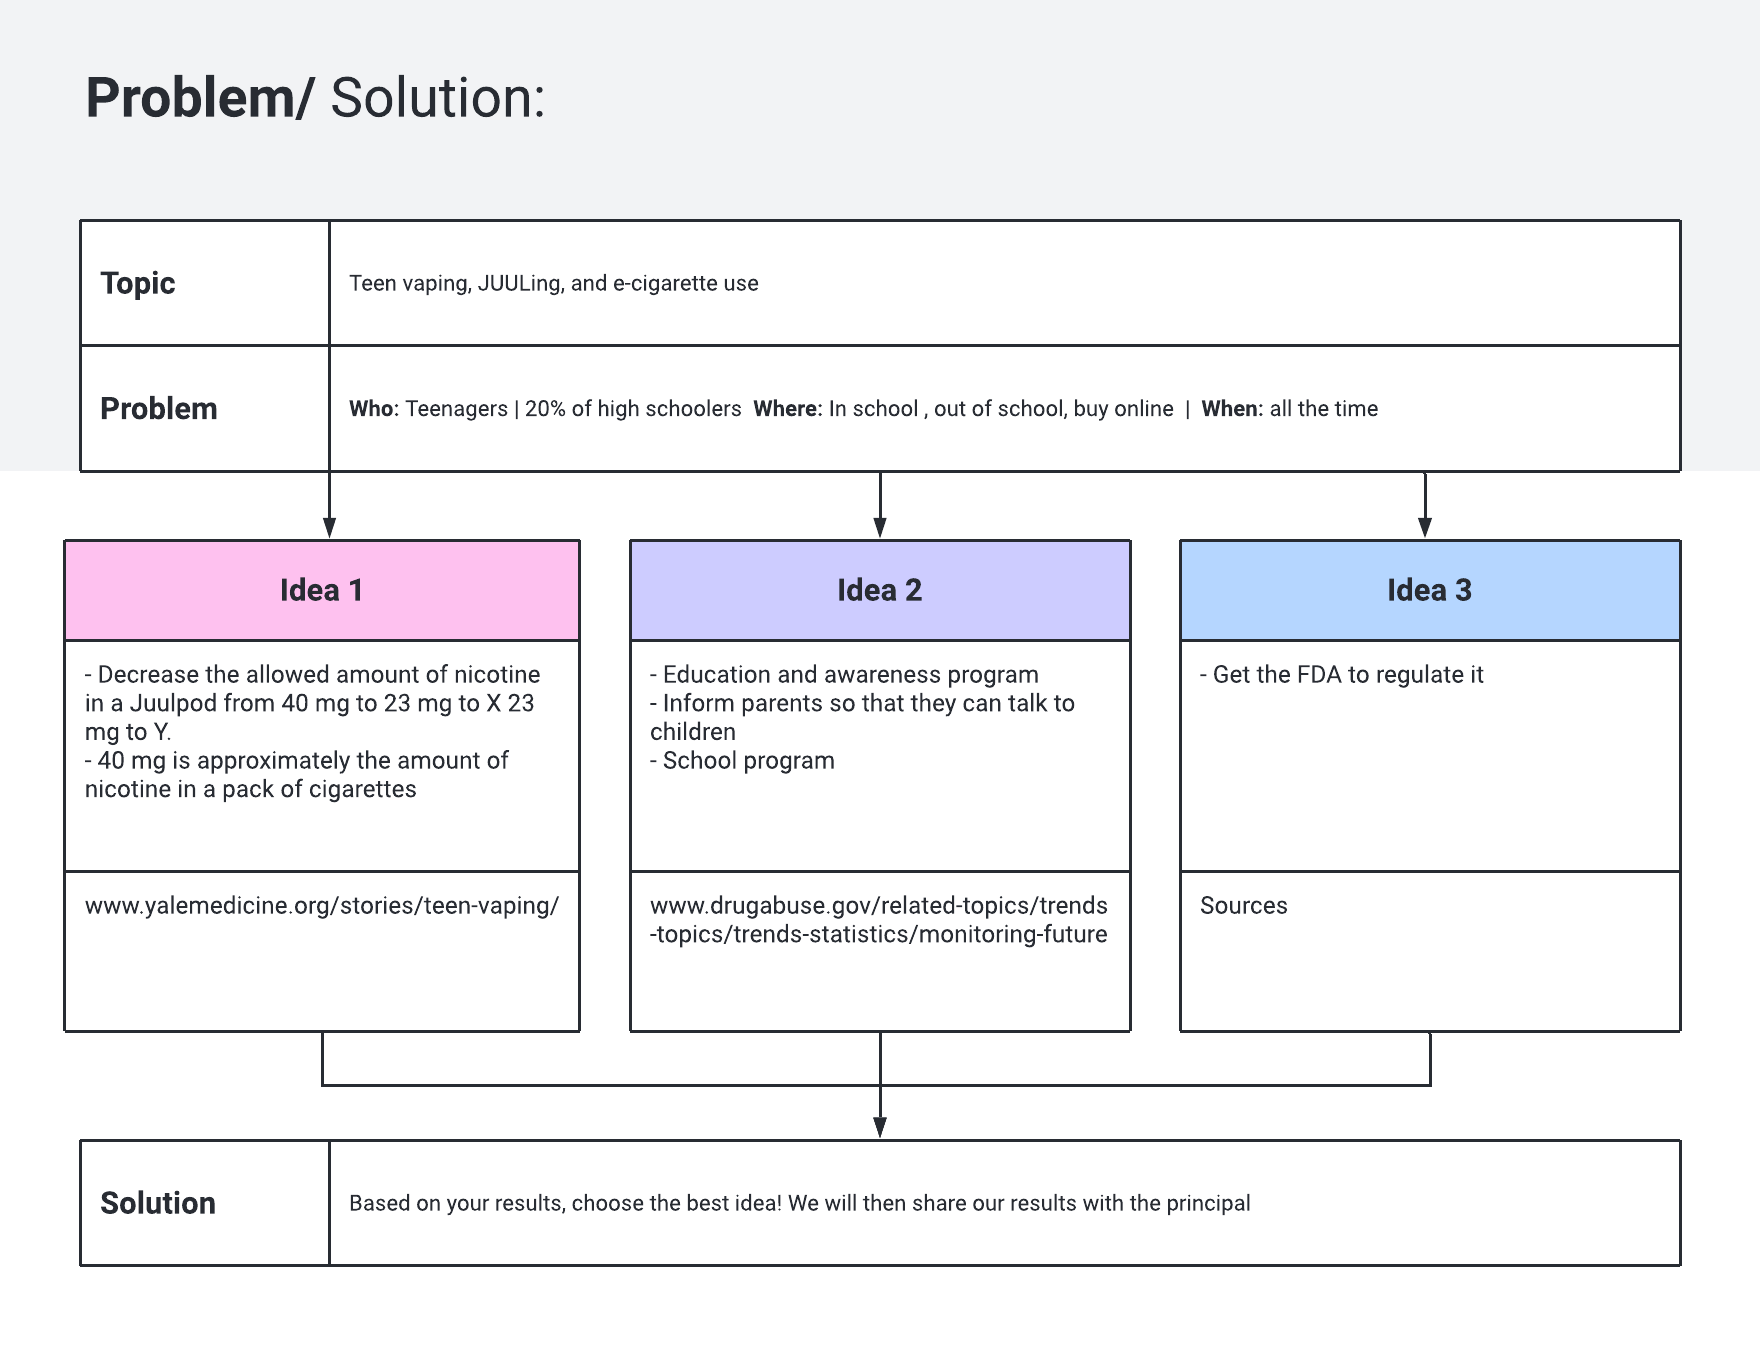 Problem/solution template